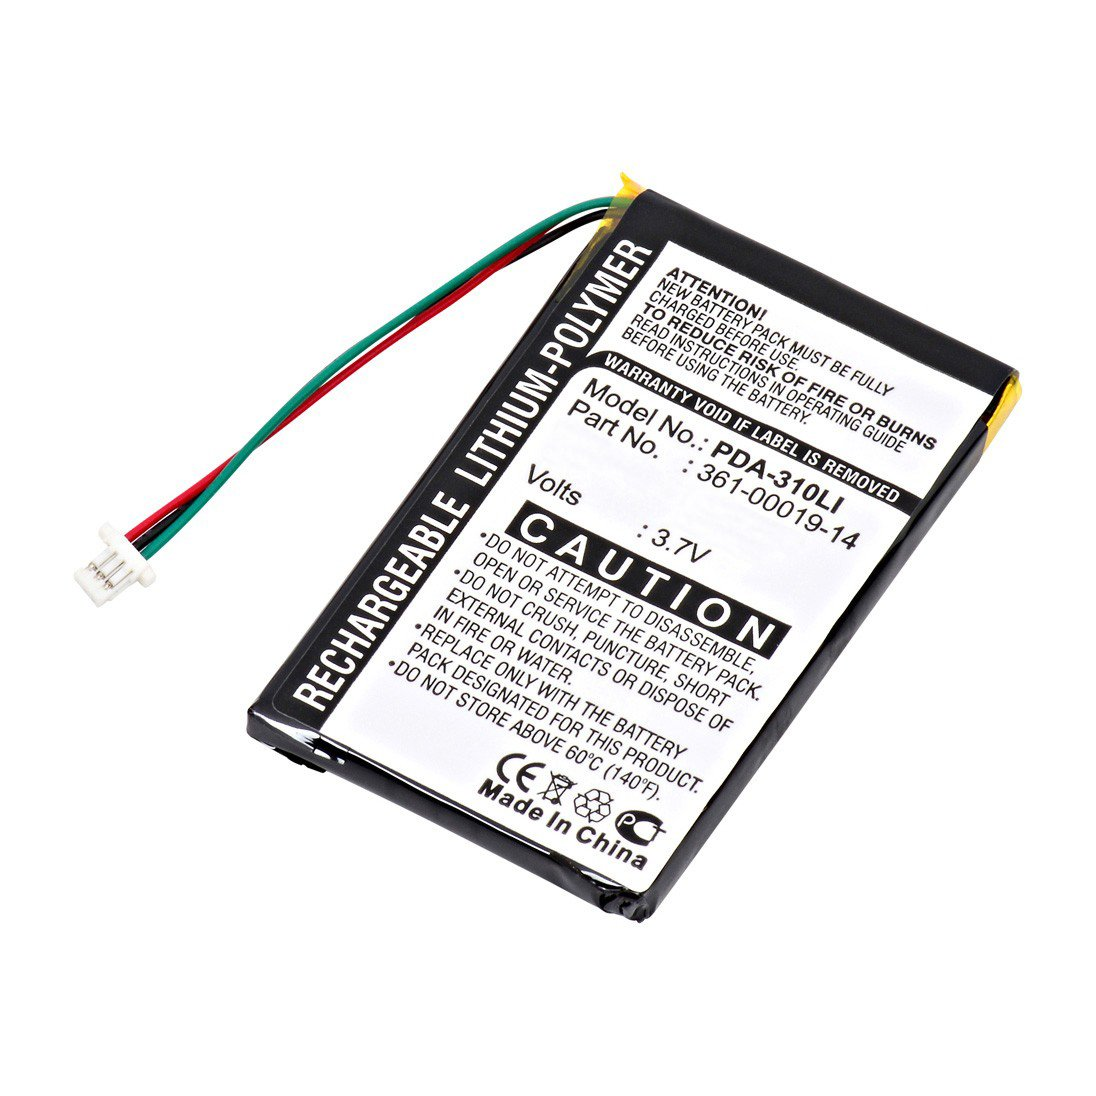 Replacement Garmin 361 00019 14 Battery Batterymart Com